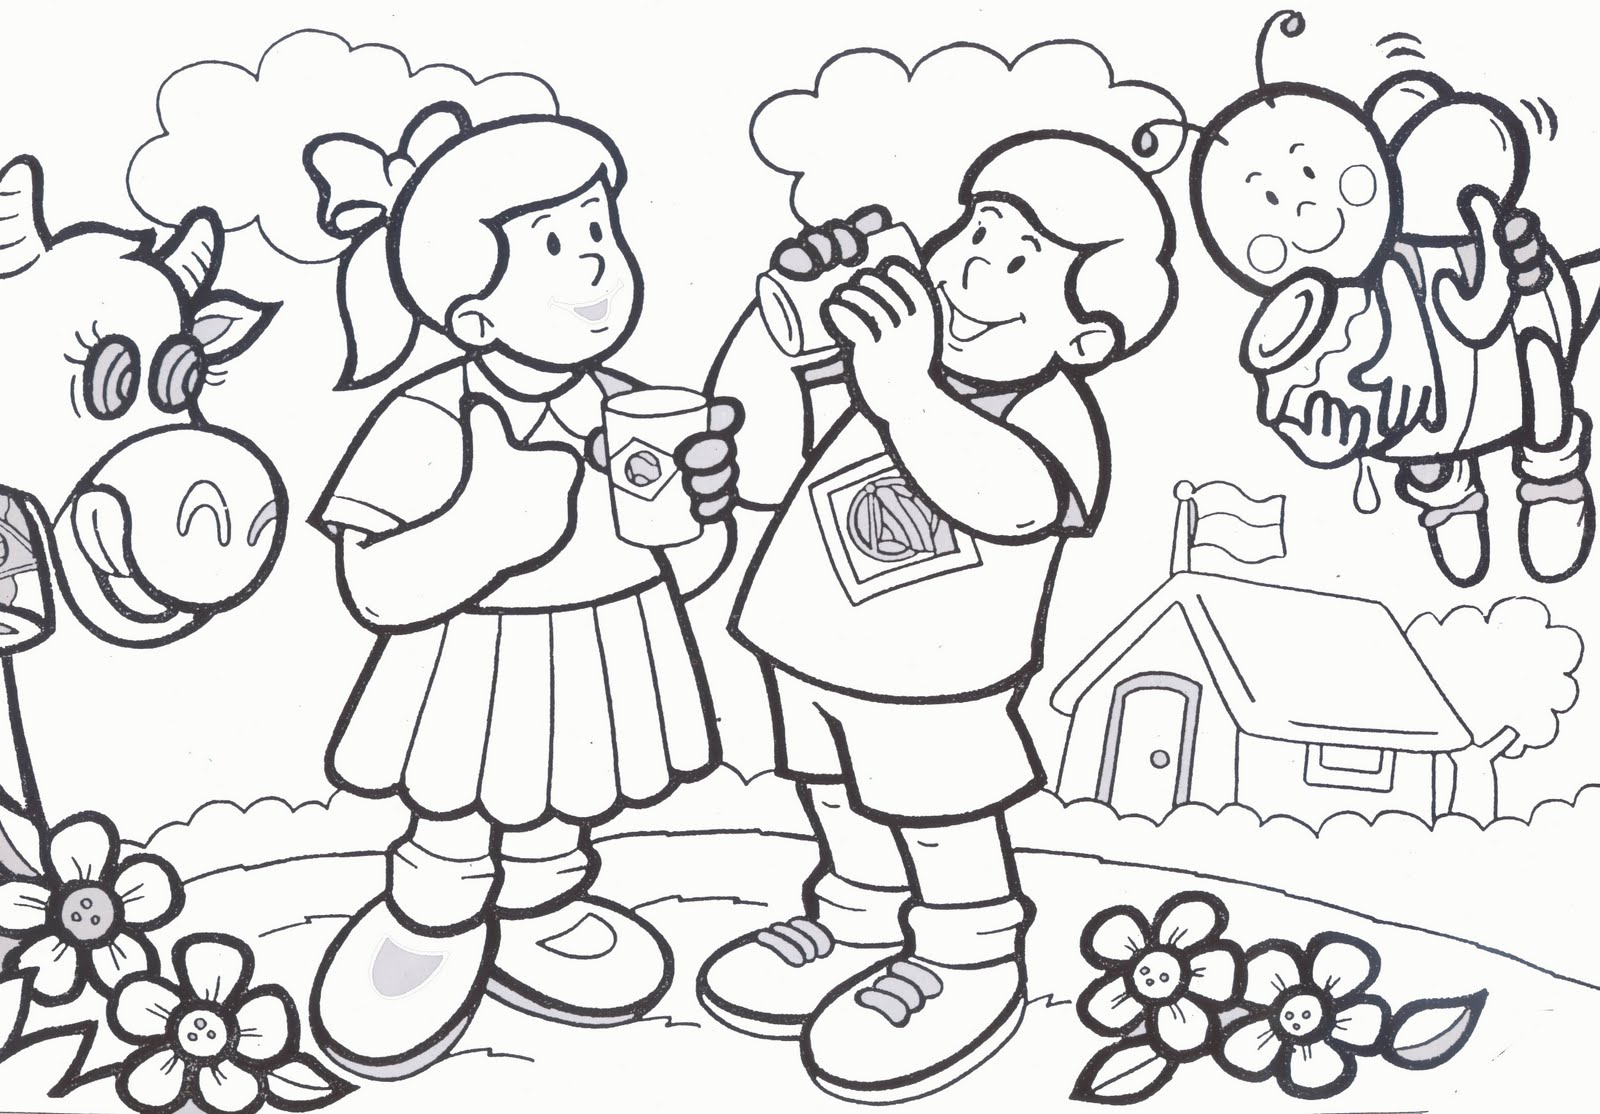 Milk Coloring Pages for Kids